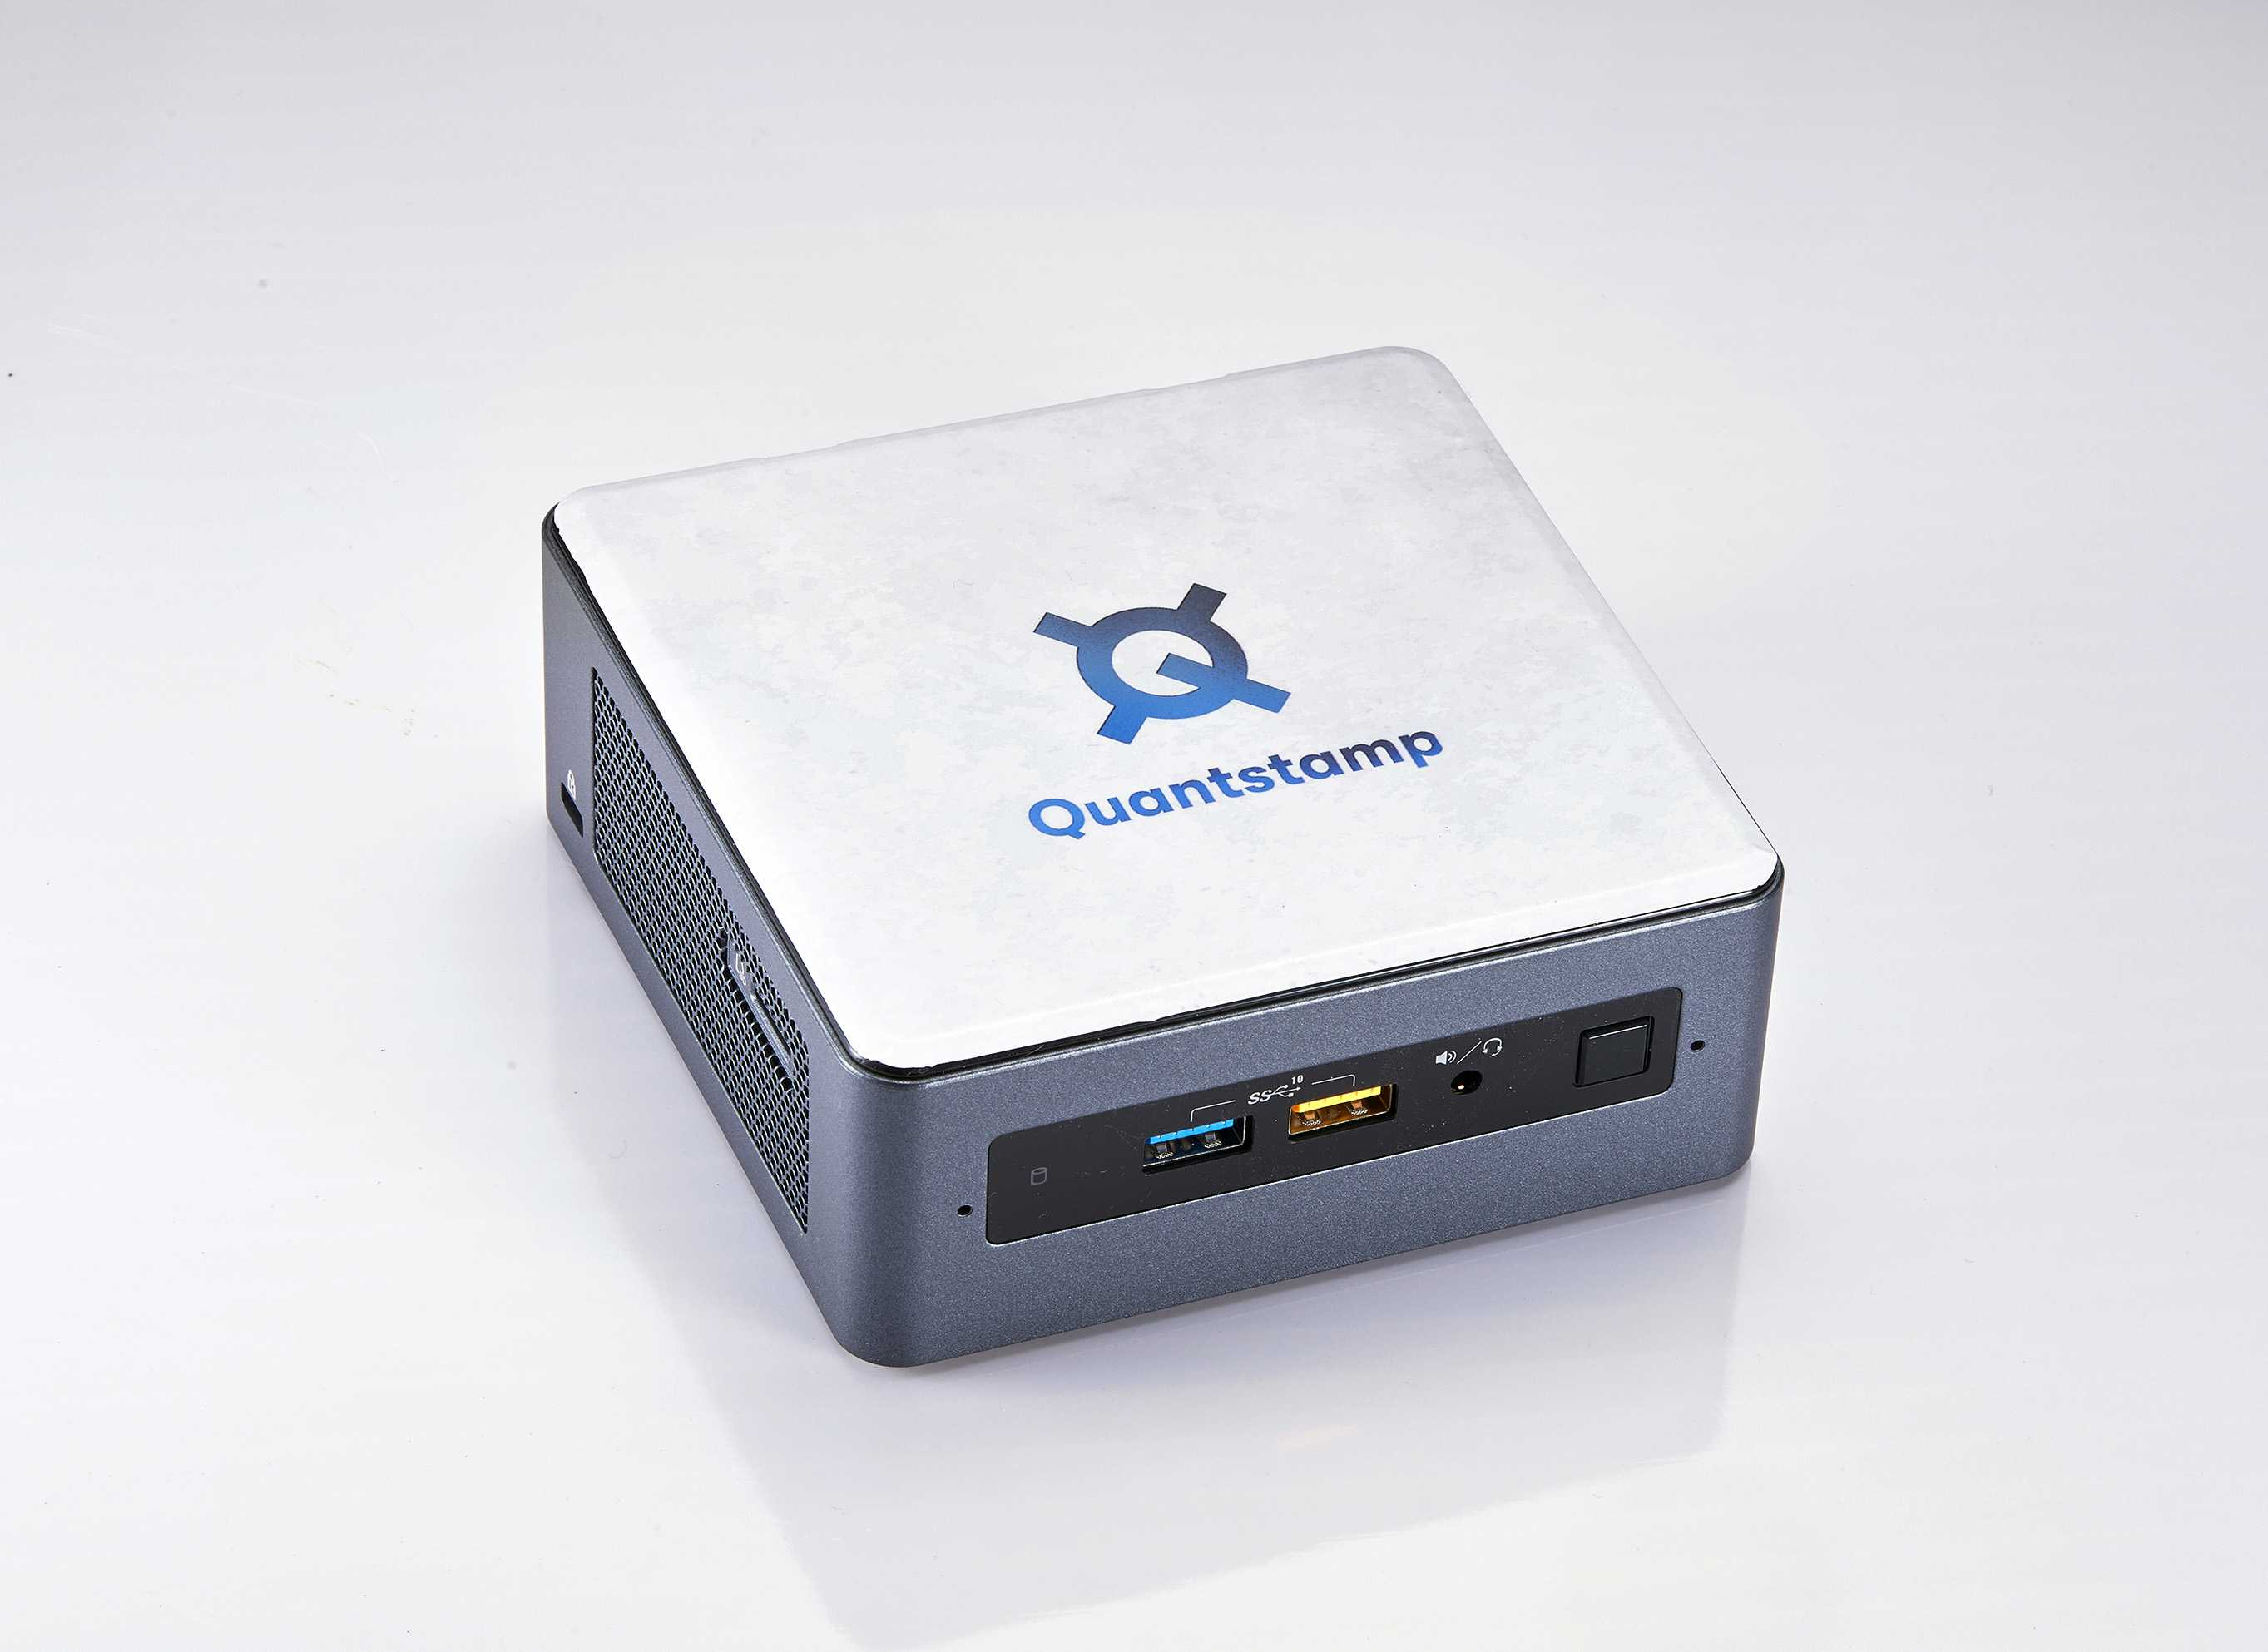 Introducing the Quantstamp Node Box